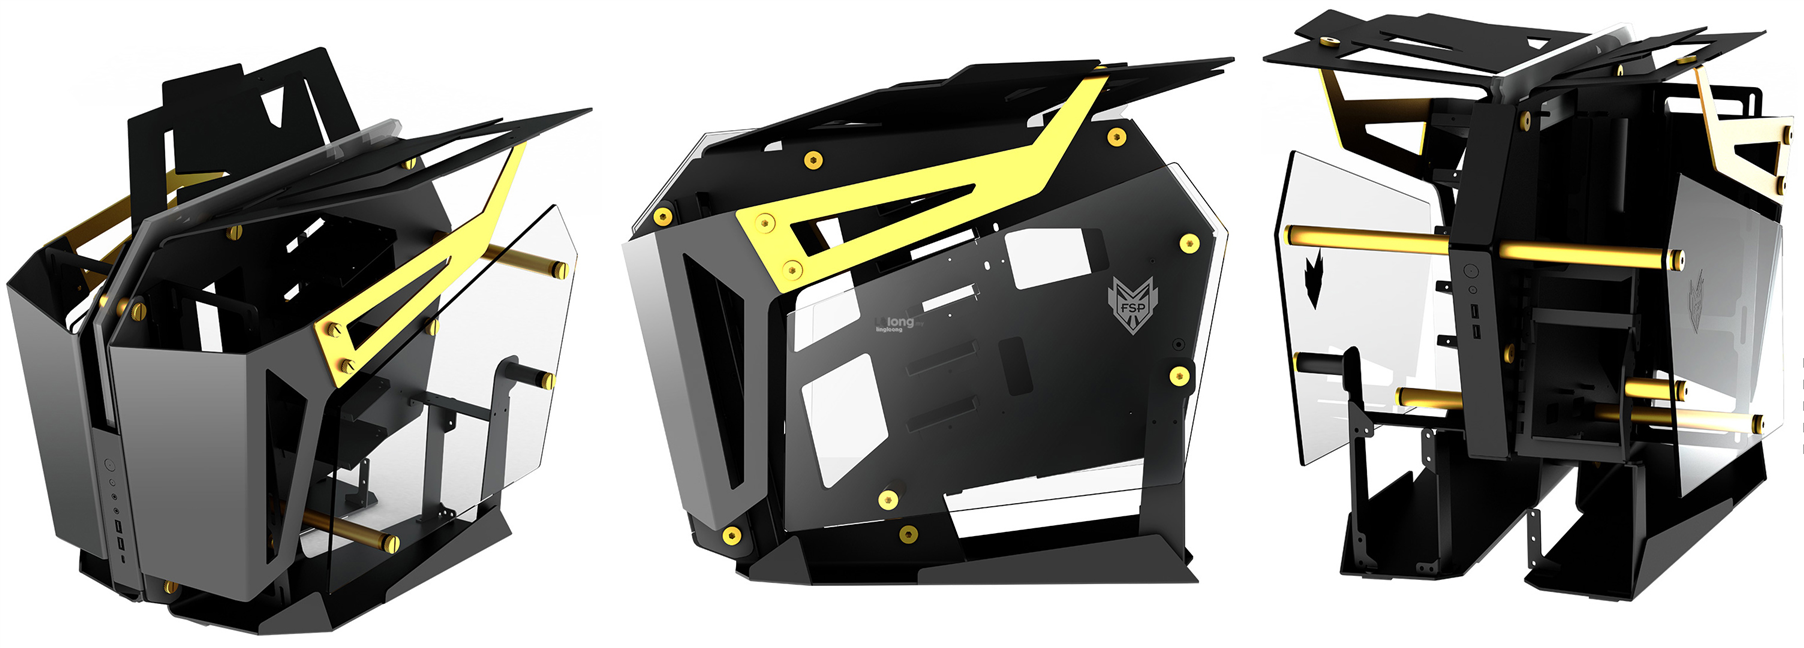 # FSP T-Wings CMT710 Open Frame 2in1 Chassis # Gold Color